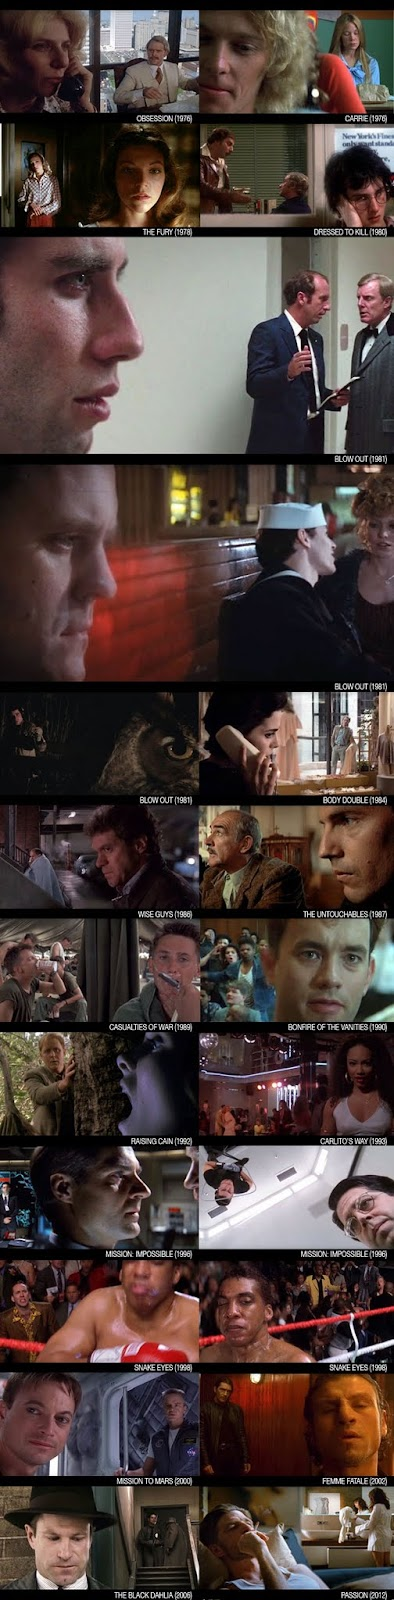 Brian De Palma - Deep Focus Split Focus Diopter Shots